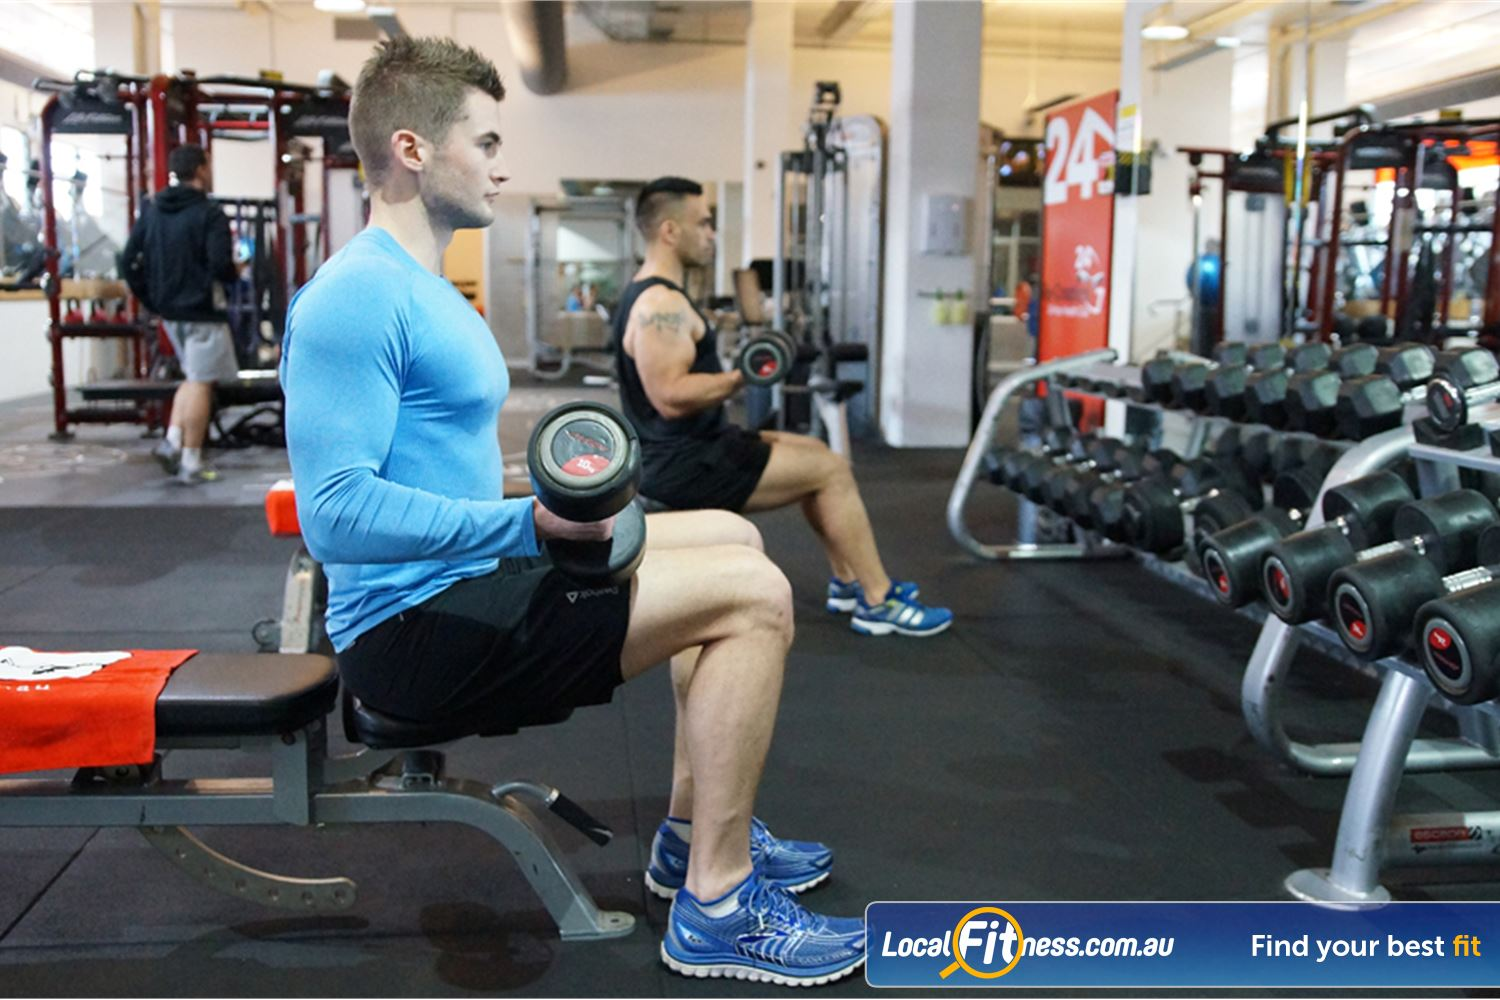 Goodlife Health Clubs Near Port Melbourne Our spacious Goodlife South Melbourne gym is fully equipped with free-weights.